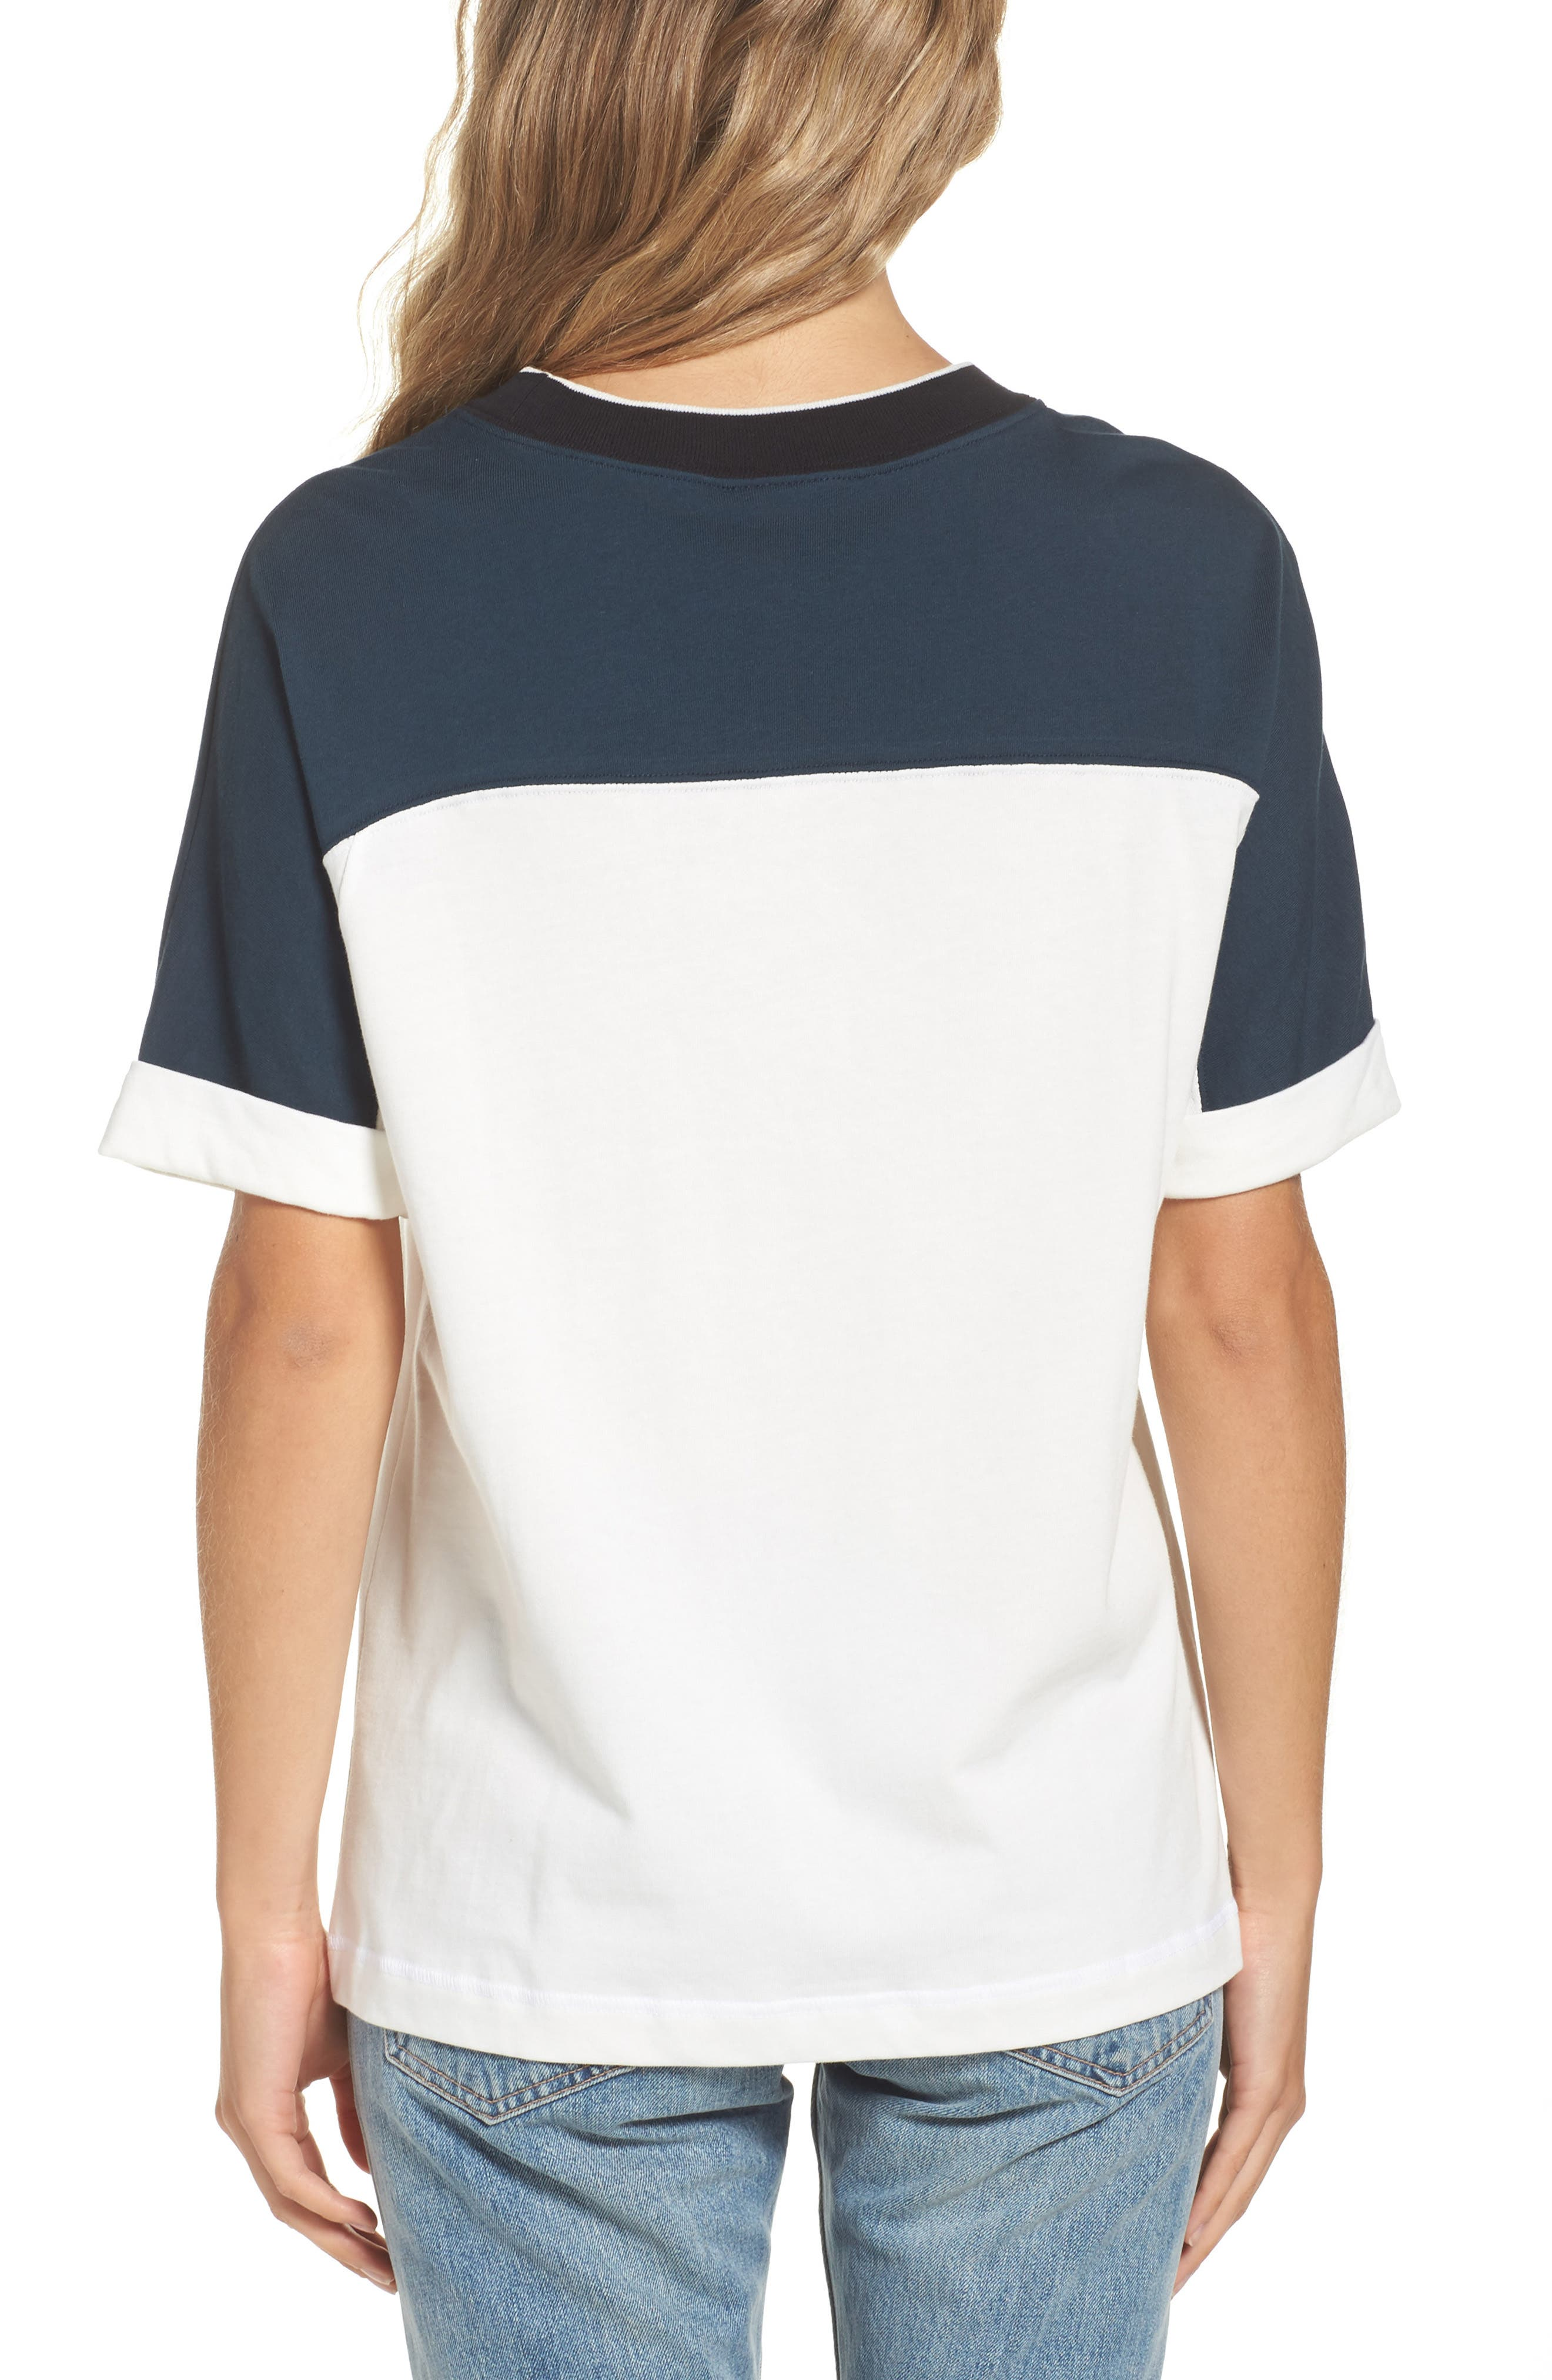 Sportswear Archive Tee,                             Alternate thumbnail 2, color,                             454